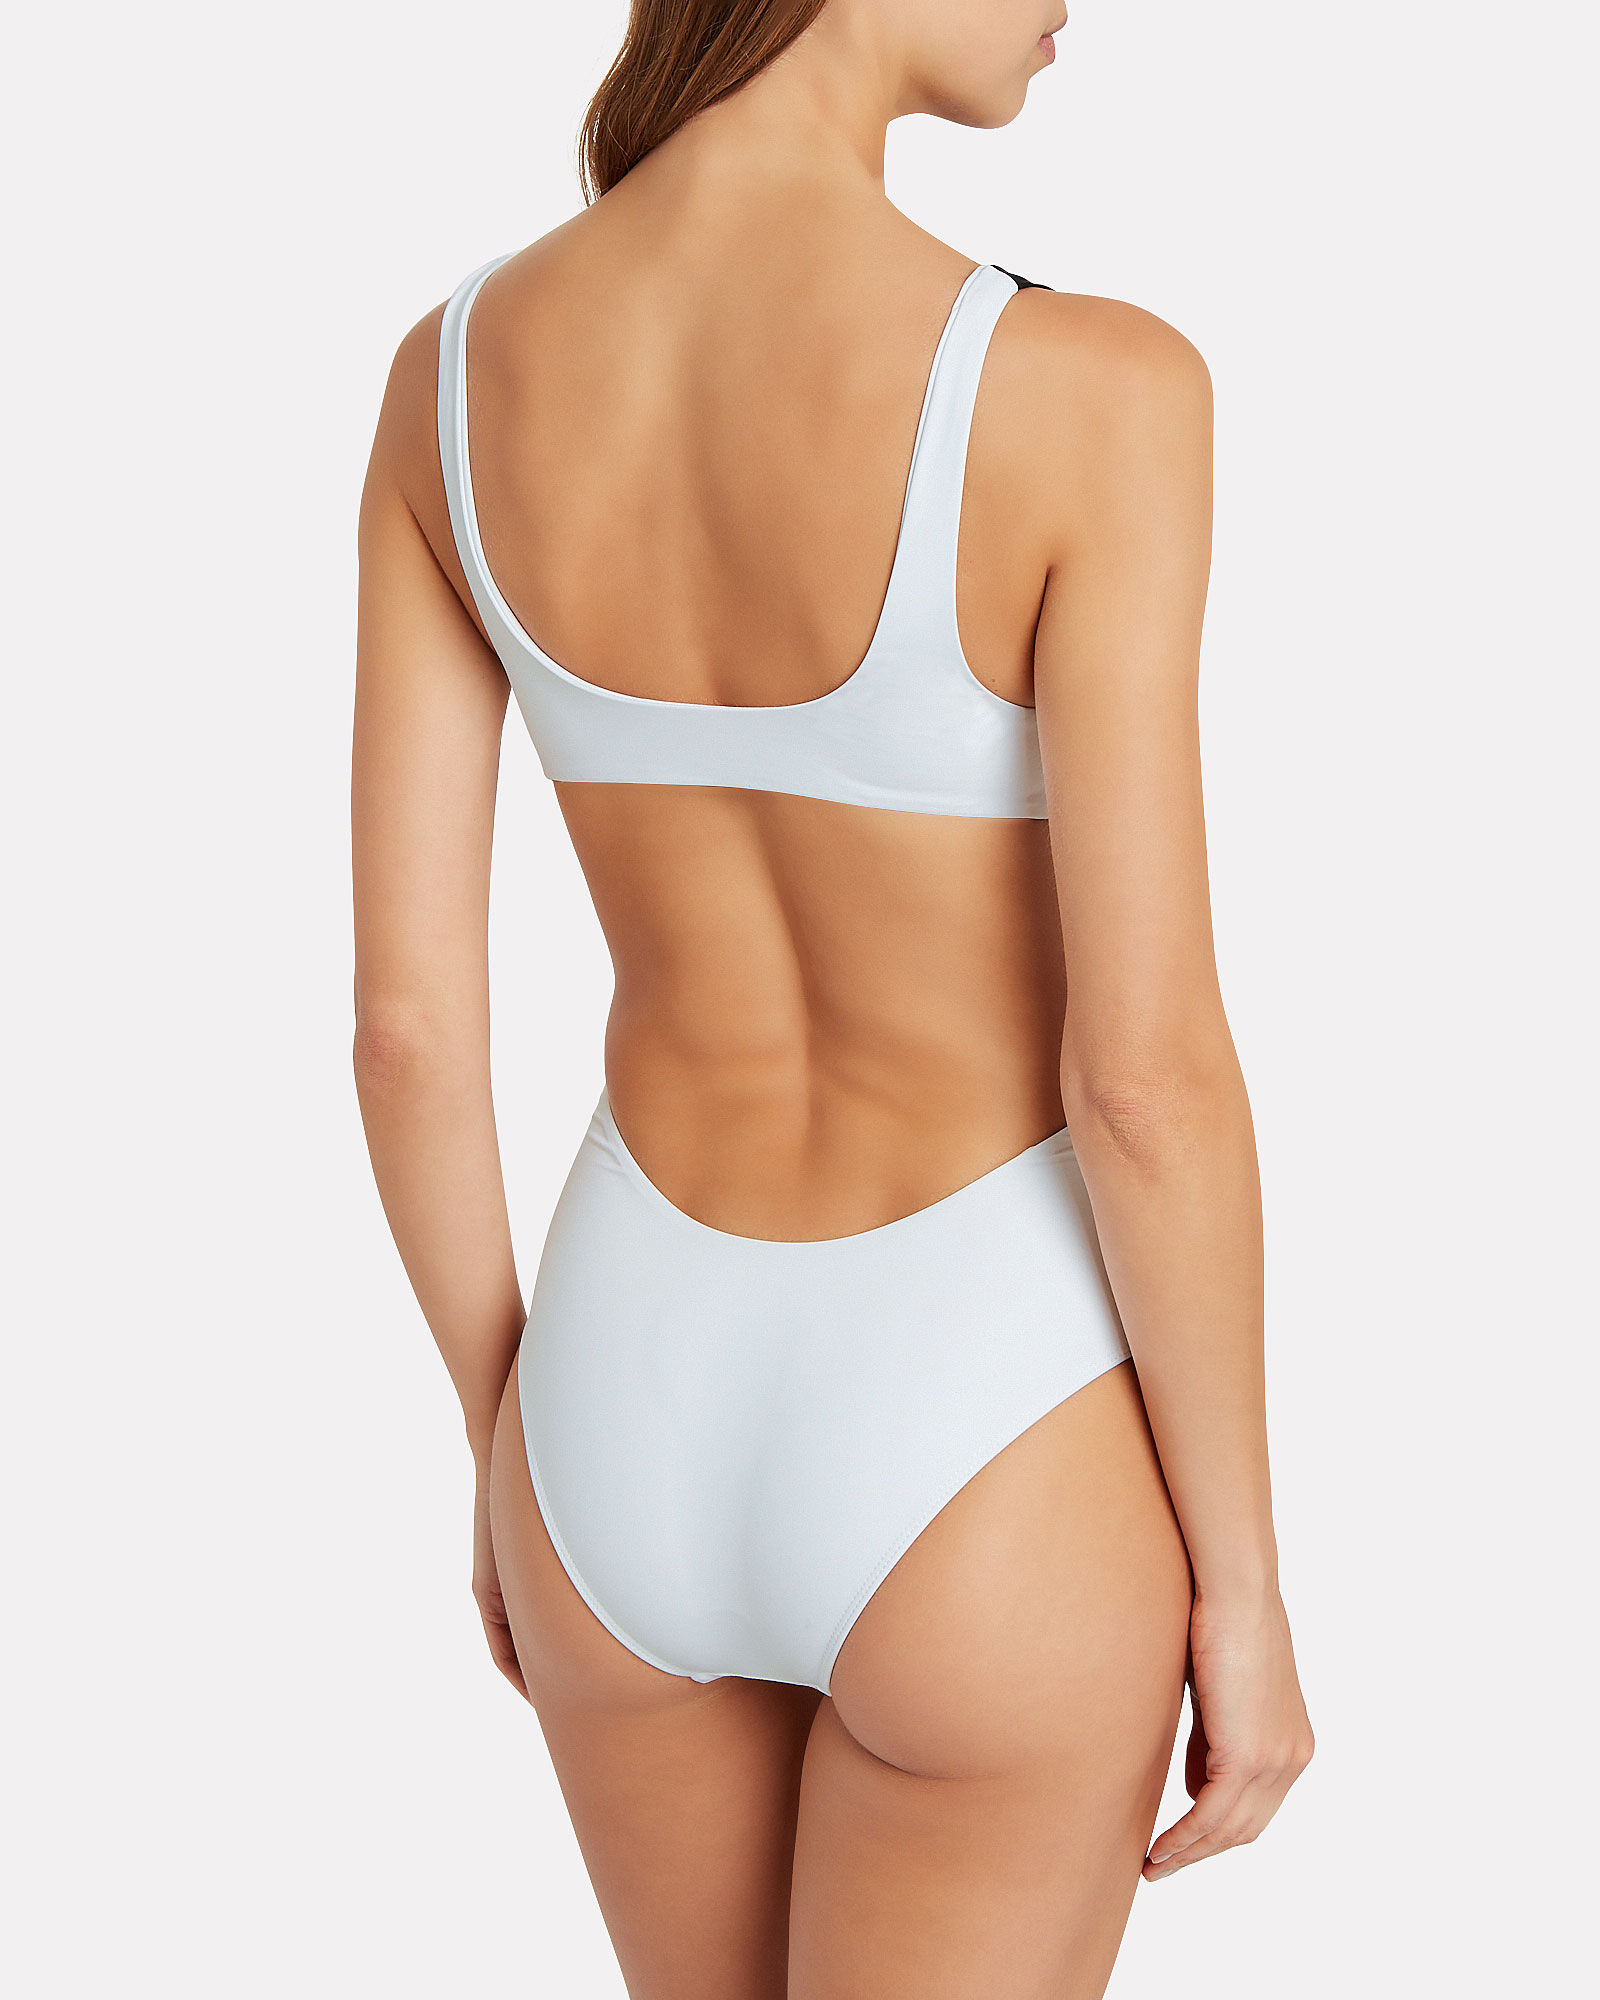 Jenny One-Piece Swimsuit, WHITE/BLACK, hi-res